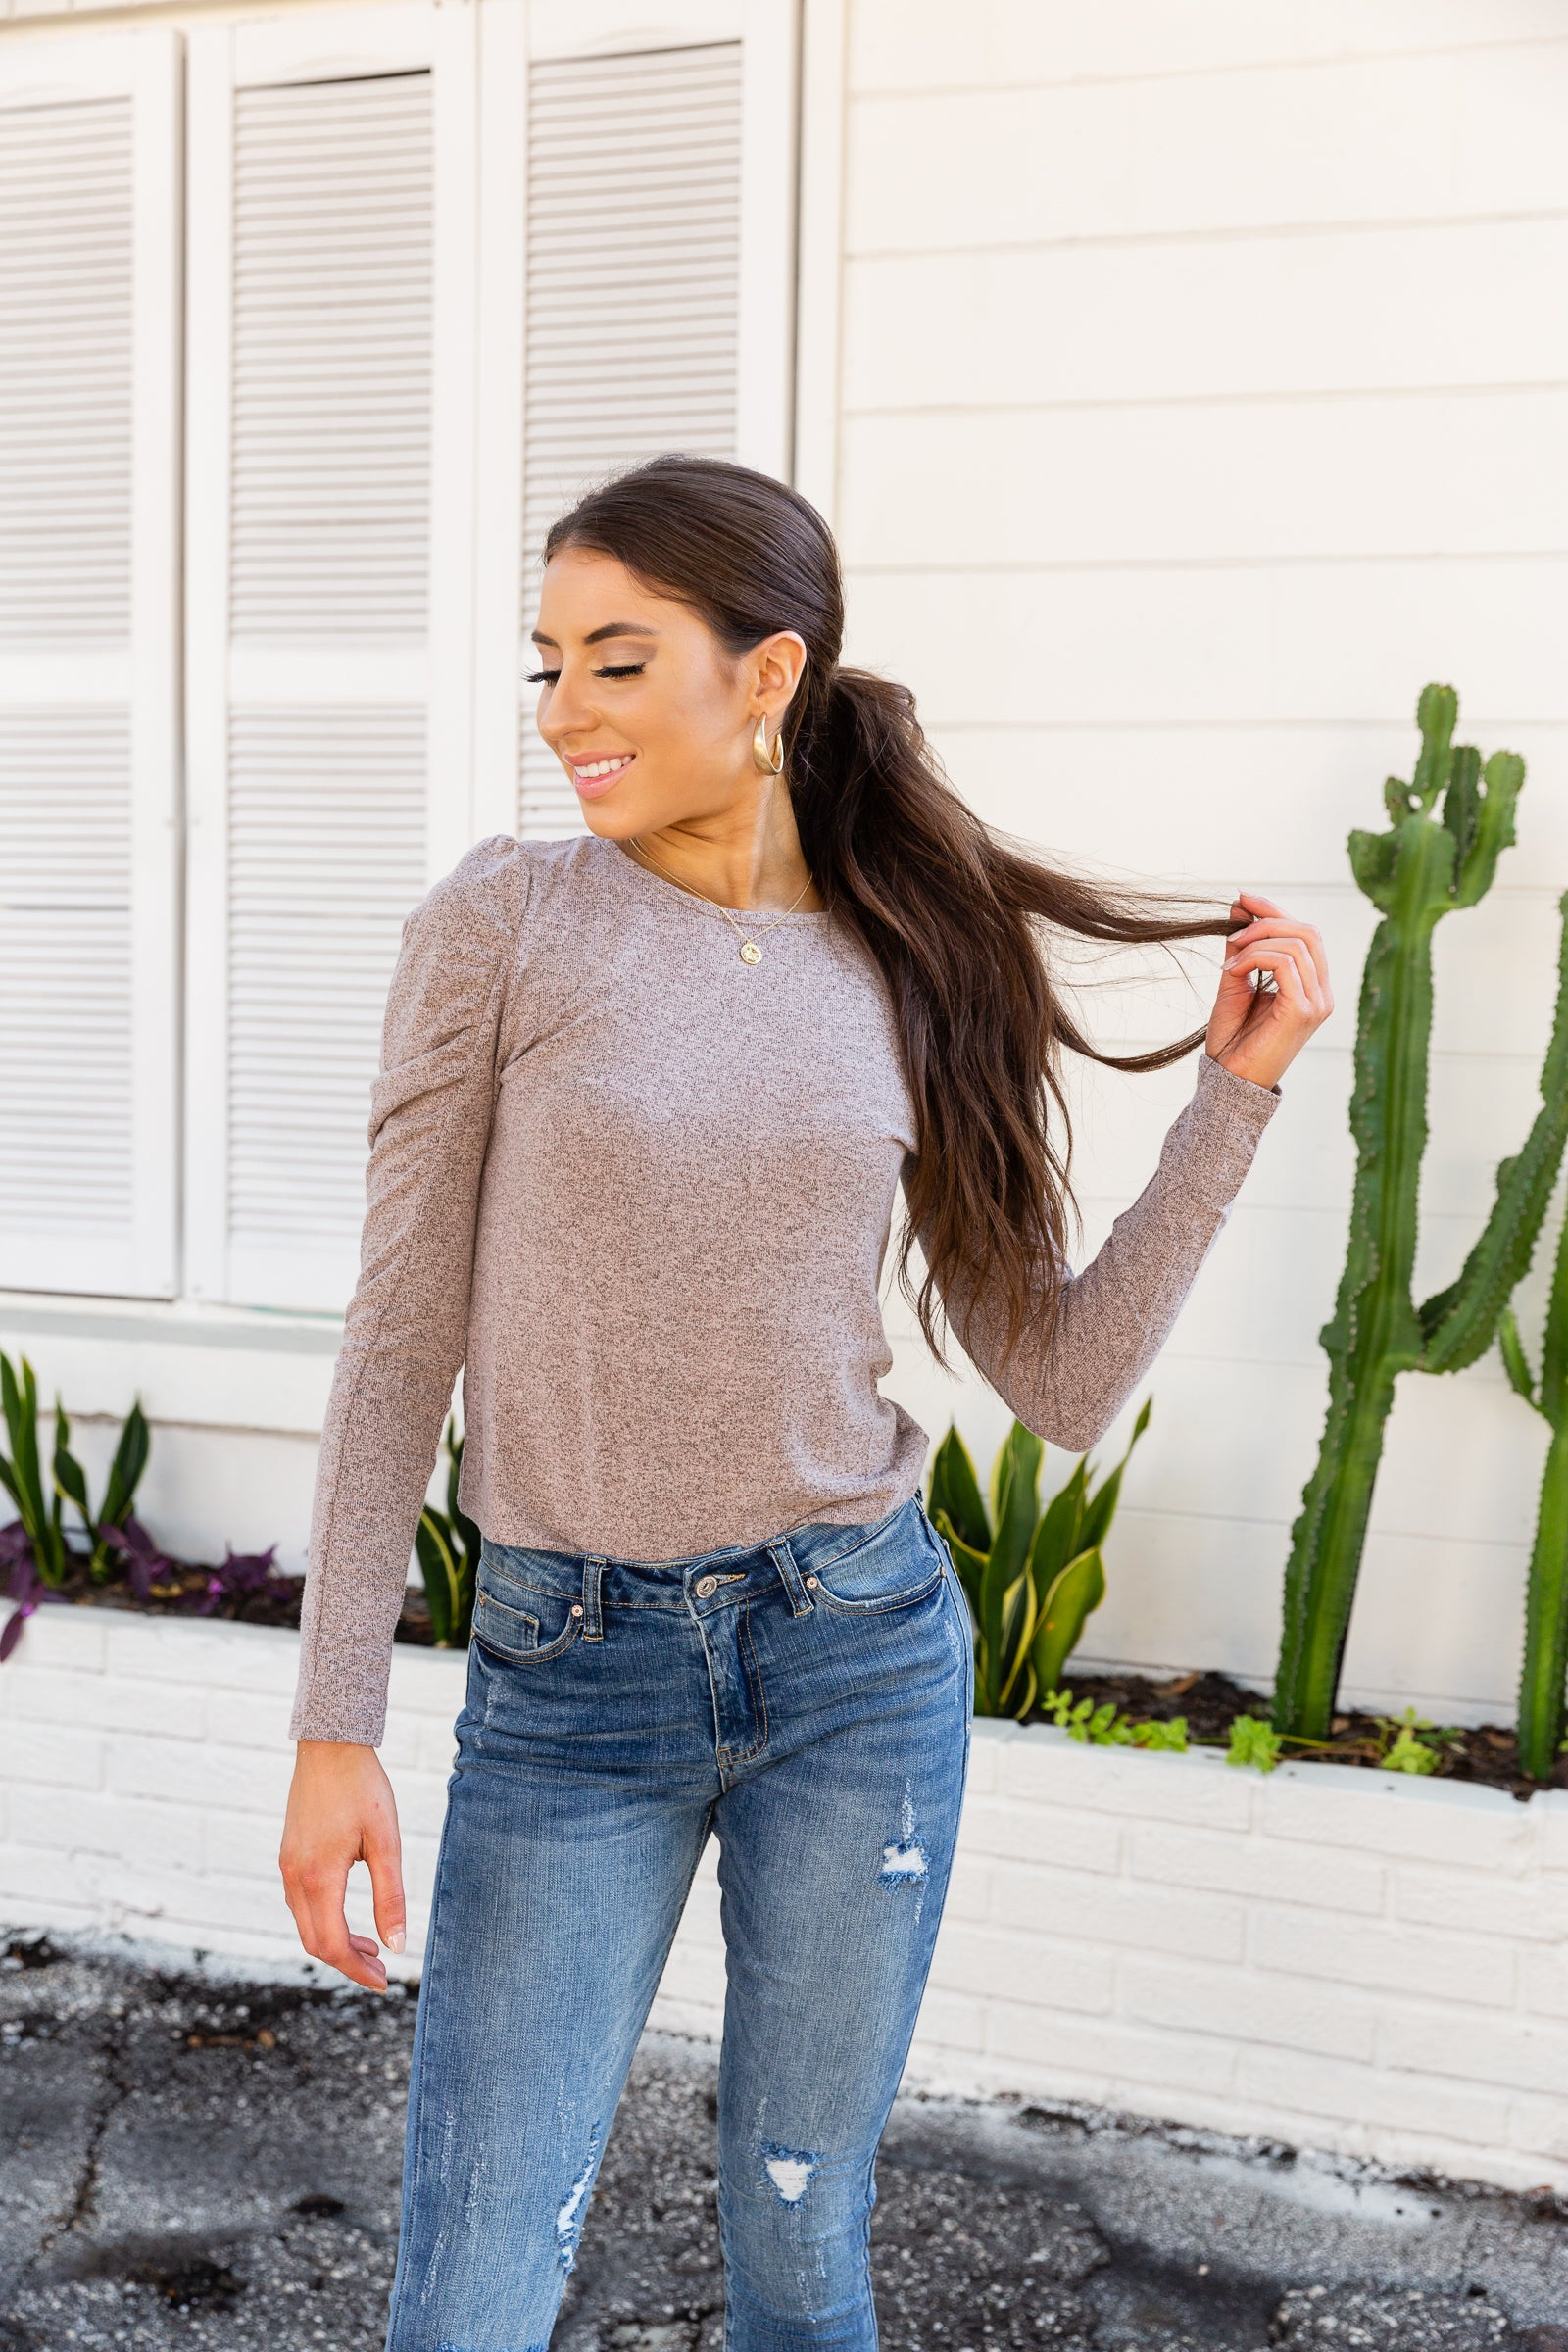 Long sleeves with puffed shoulders attach to a rounded neckline on a comfortably fitted bodice silhouette. Style this easy autumn top with jeans.